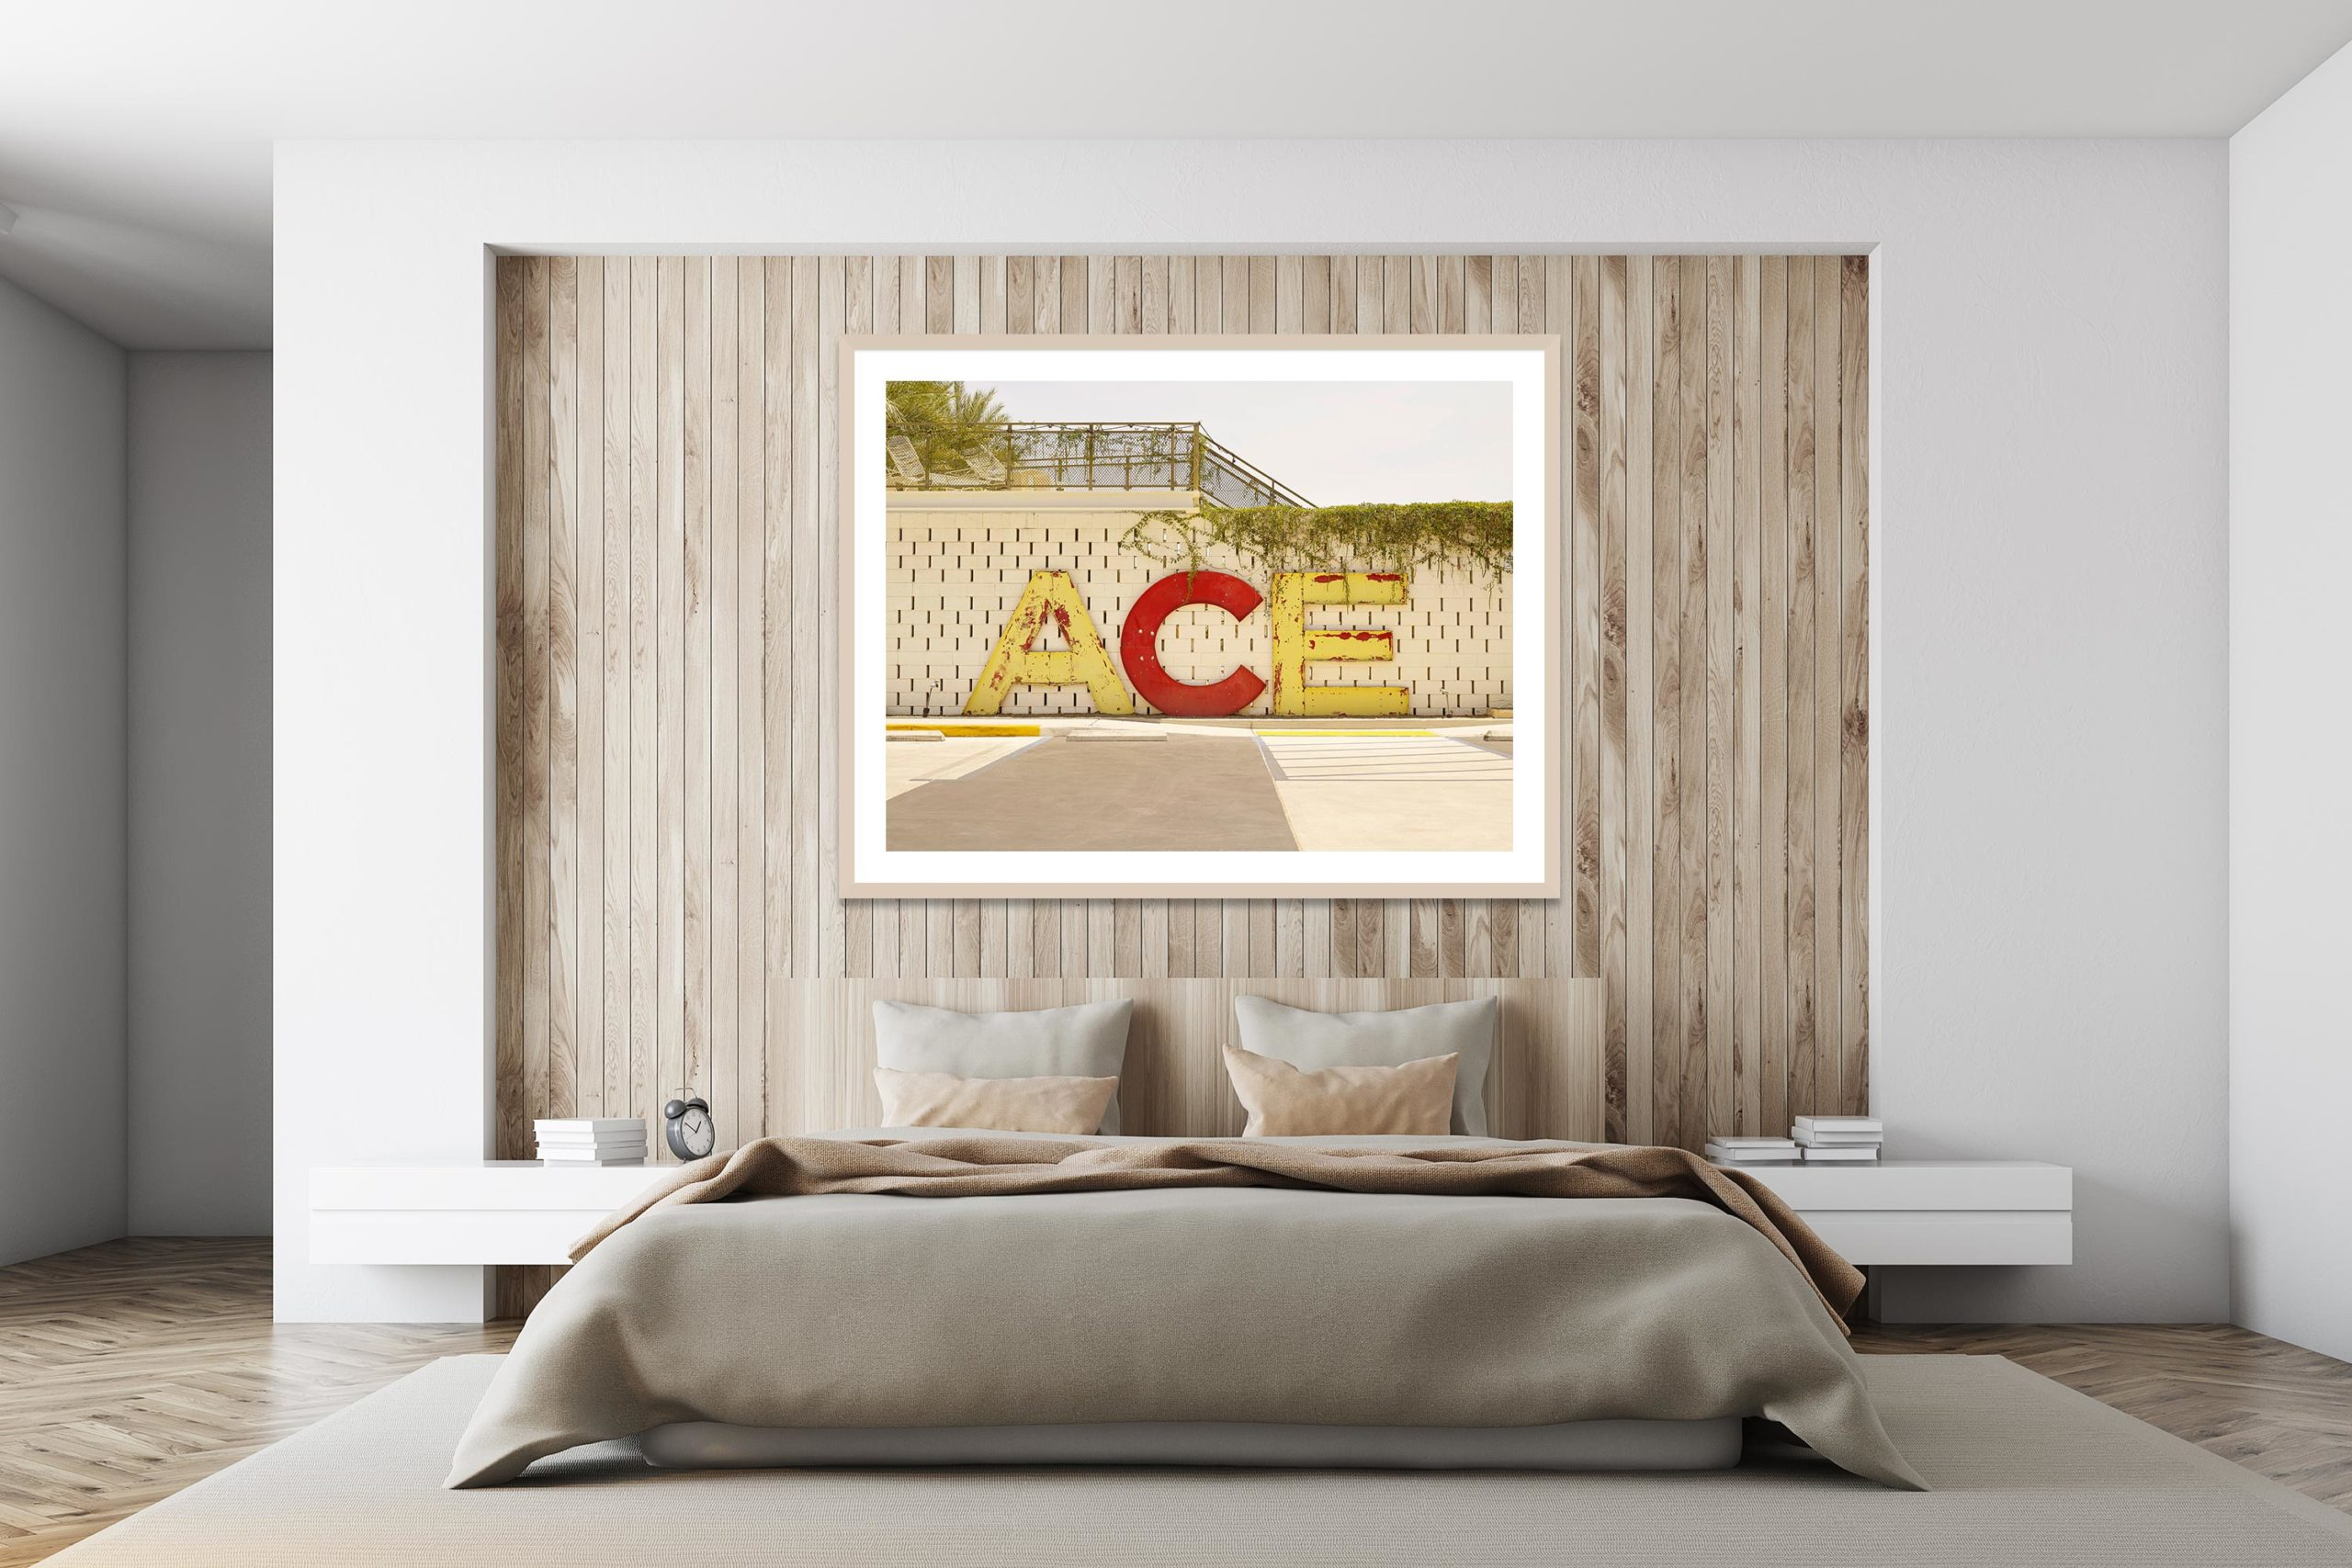 Ace Hotel - Timber Frame - I Heart Palm Springs Collection - Fine Art Photography by Toby Dixon